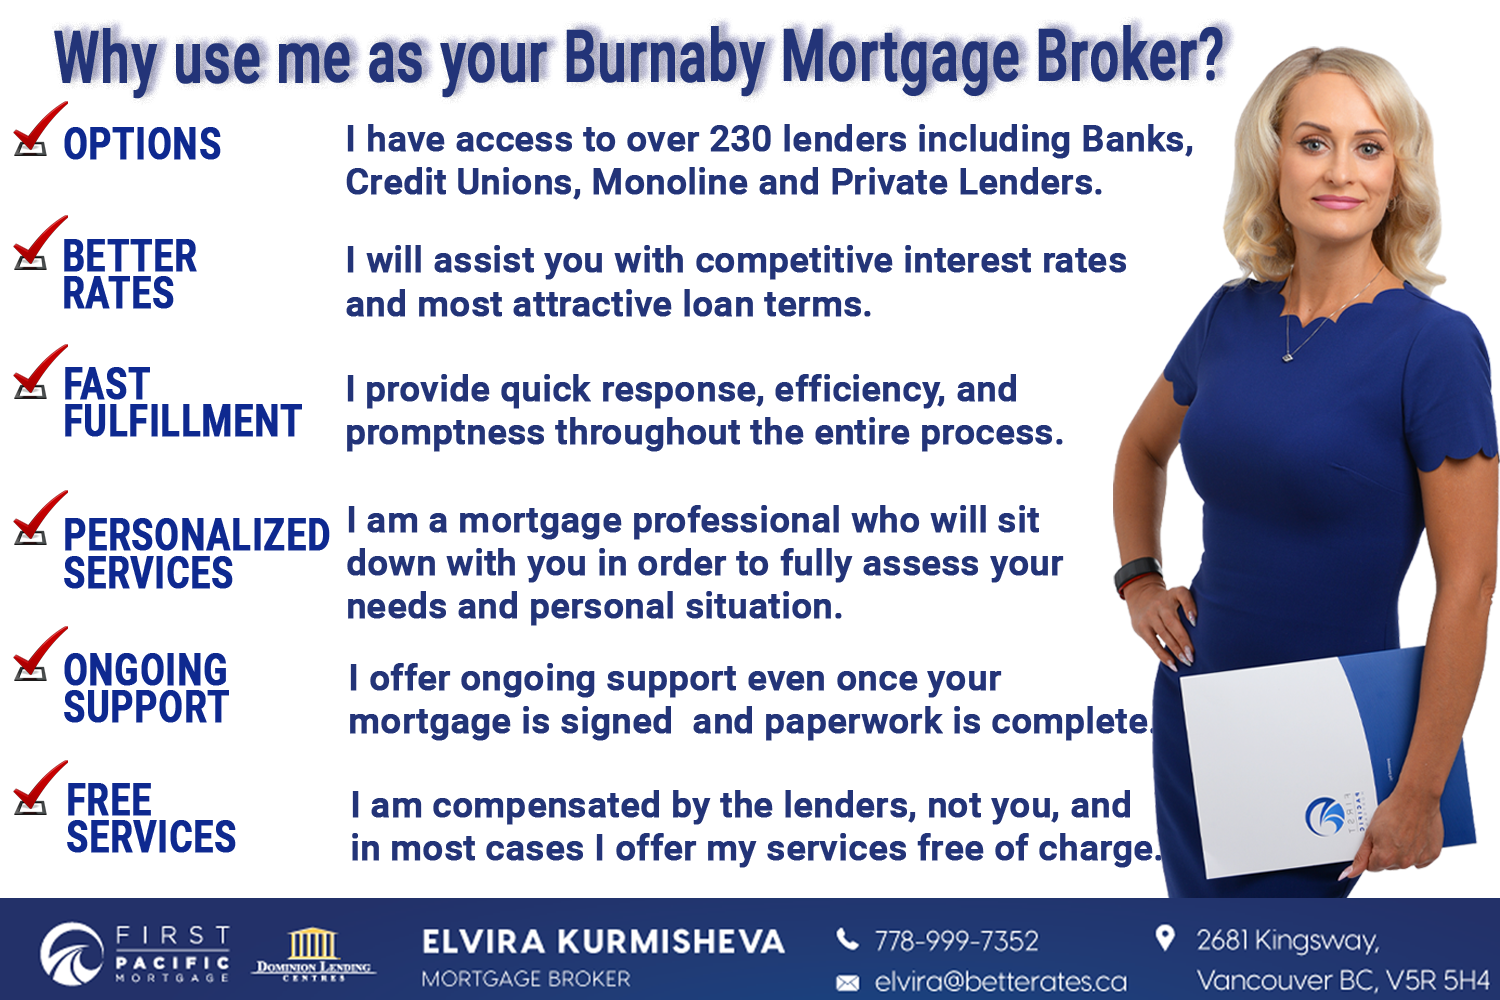 Picture of Burnaby mortgage broker